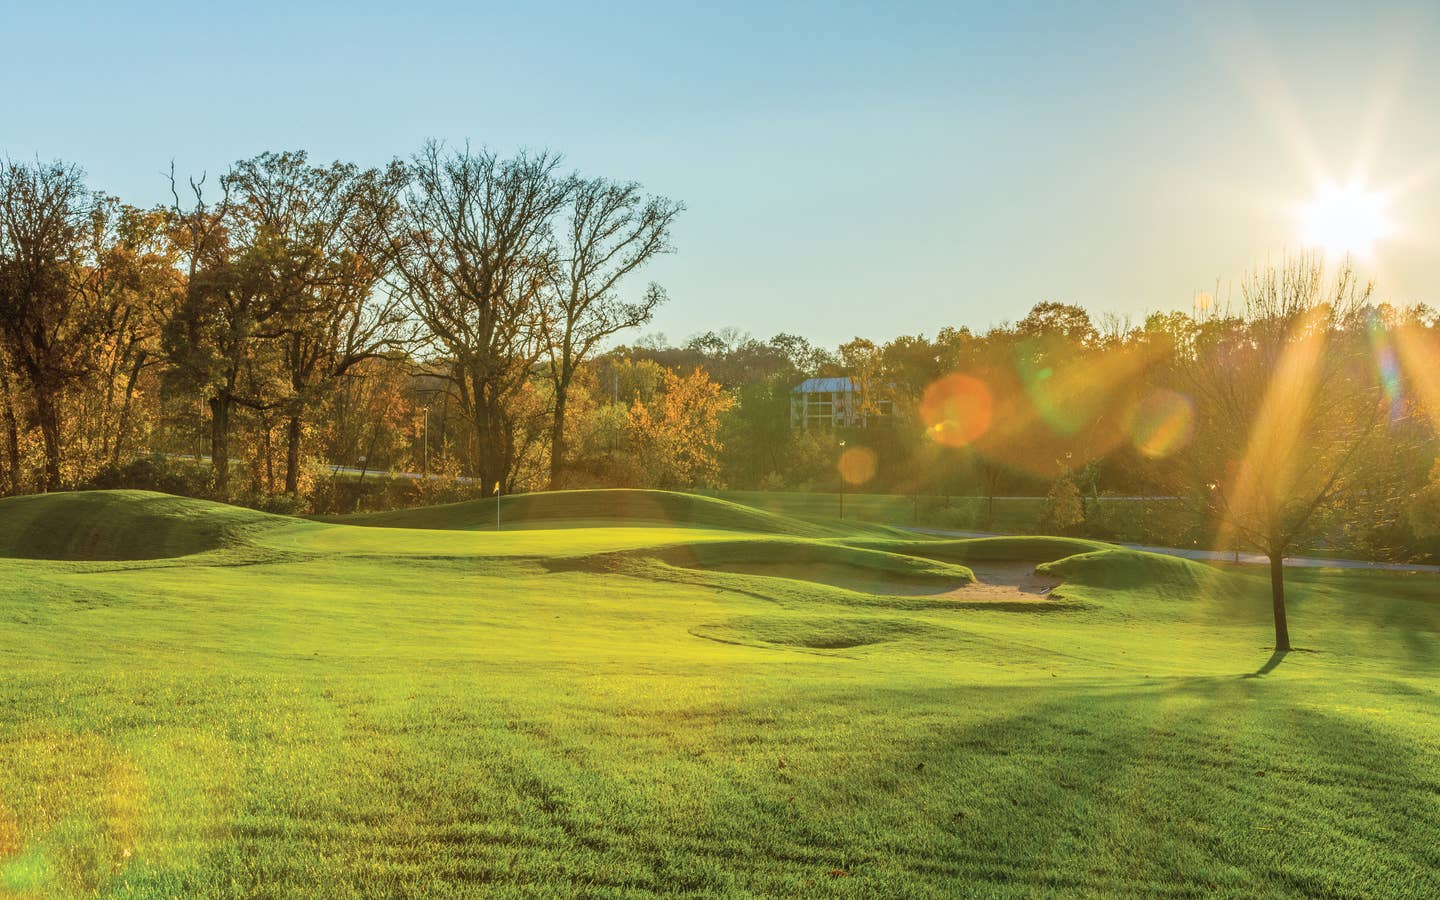 Outdoor golf course at Fox River Resort in Sheridan, Illinois